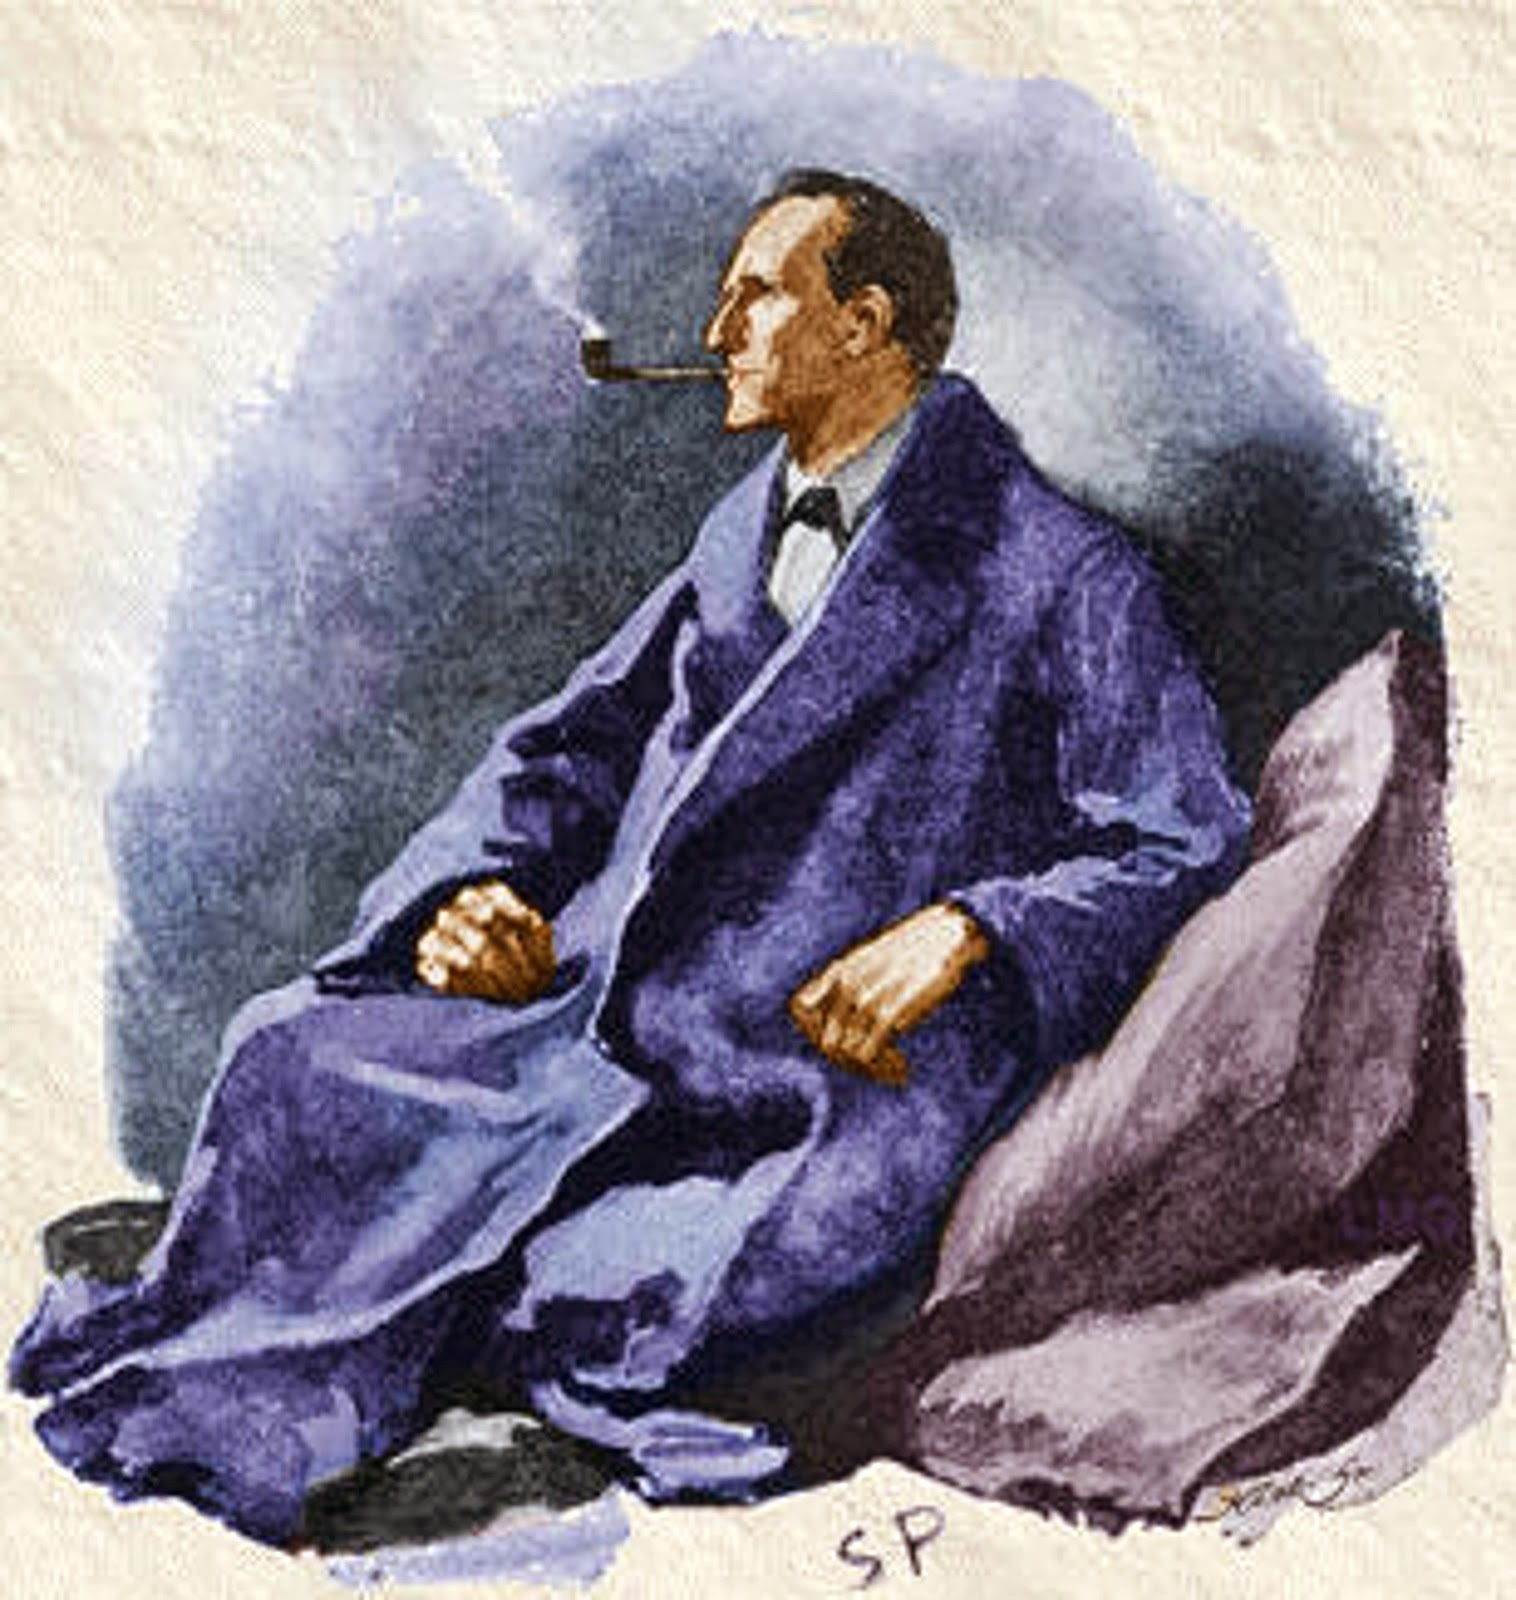 The 12 Best Sherlock Holmes Stories, According to Arthur Conan Doyle